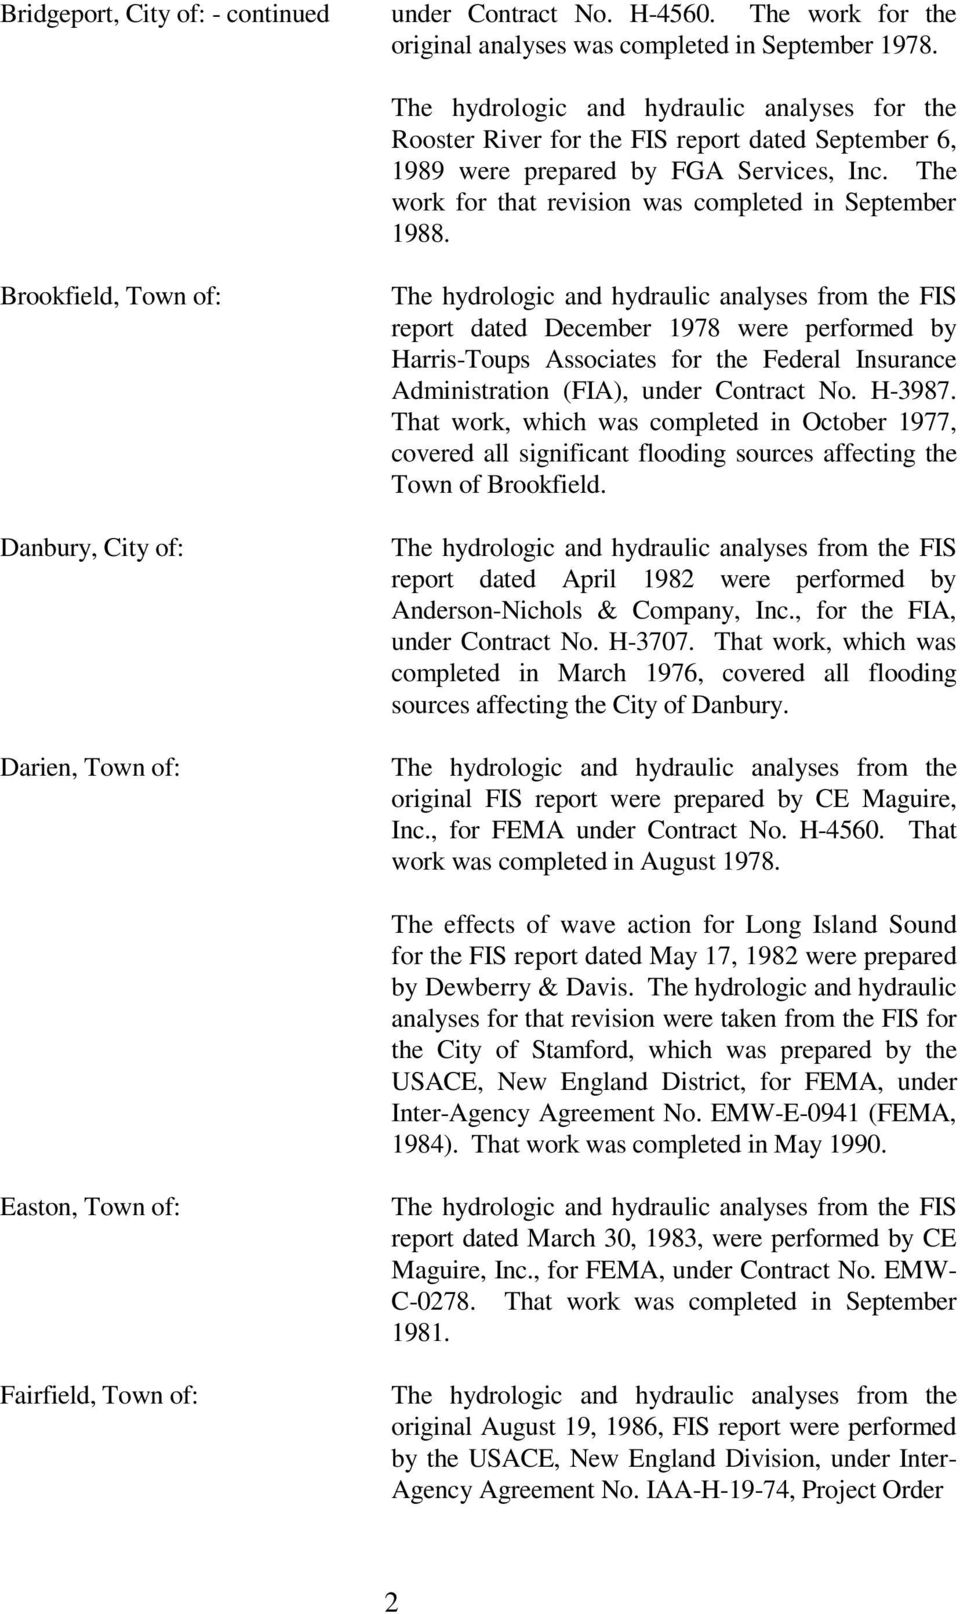 Brookfield, Town of: Danbury, City of: Darien, Town of: The hydrologic and hydraulic analyses from the FIS report dated December 1978 were performed by Harris-Toups Associates for the Federal